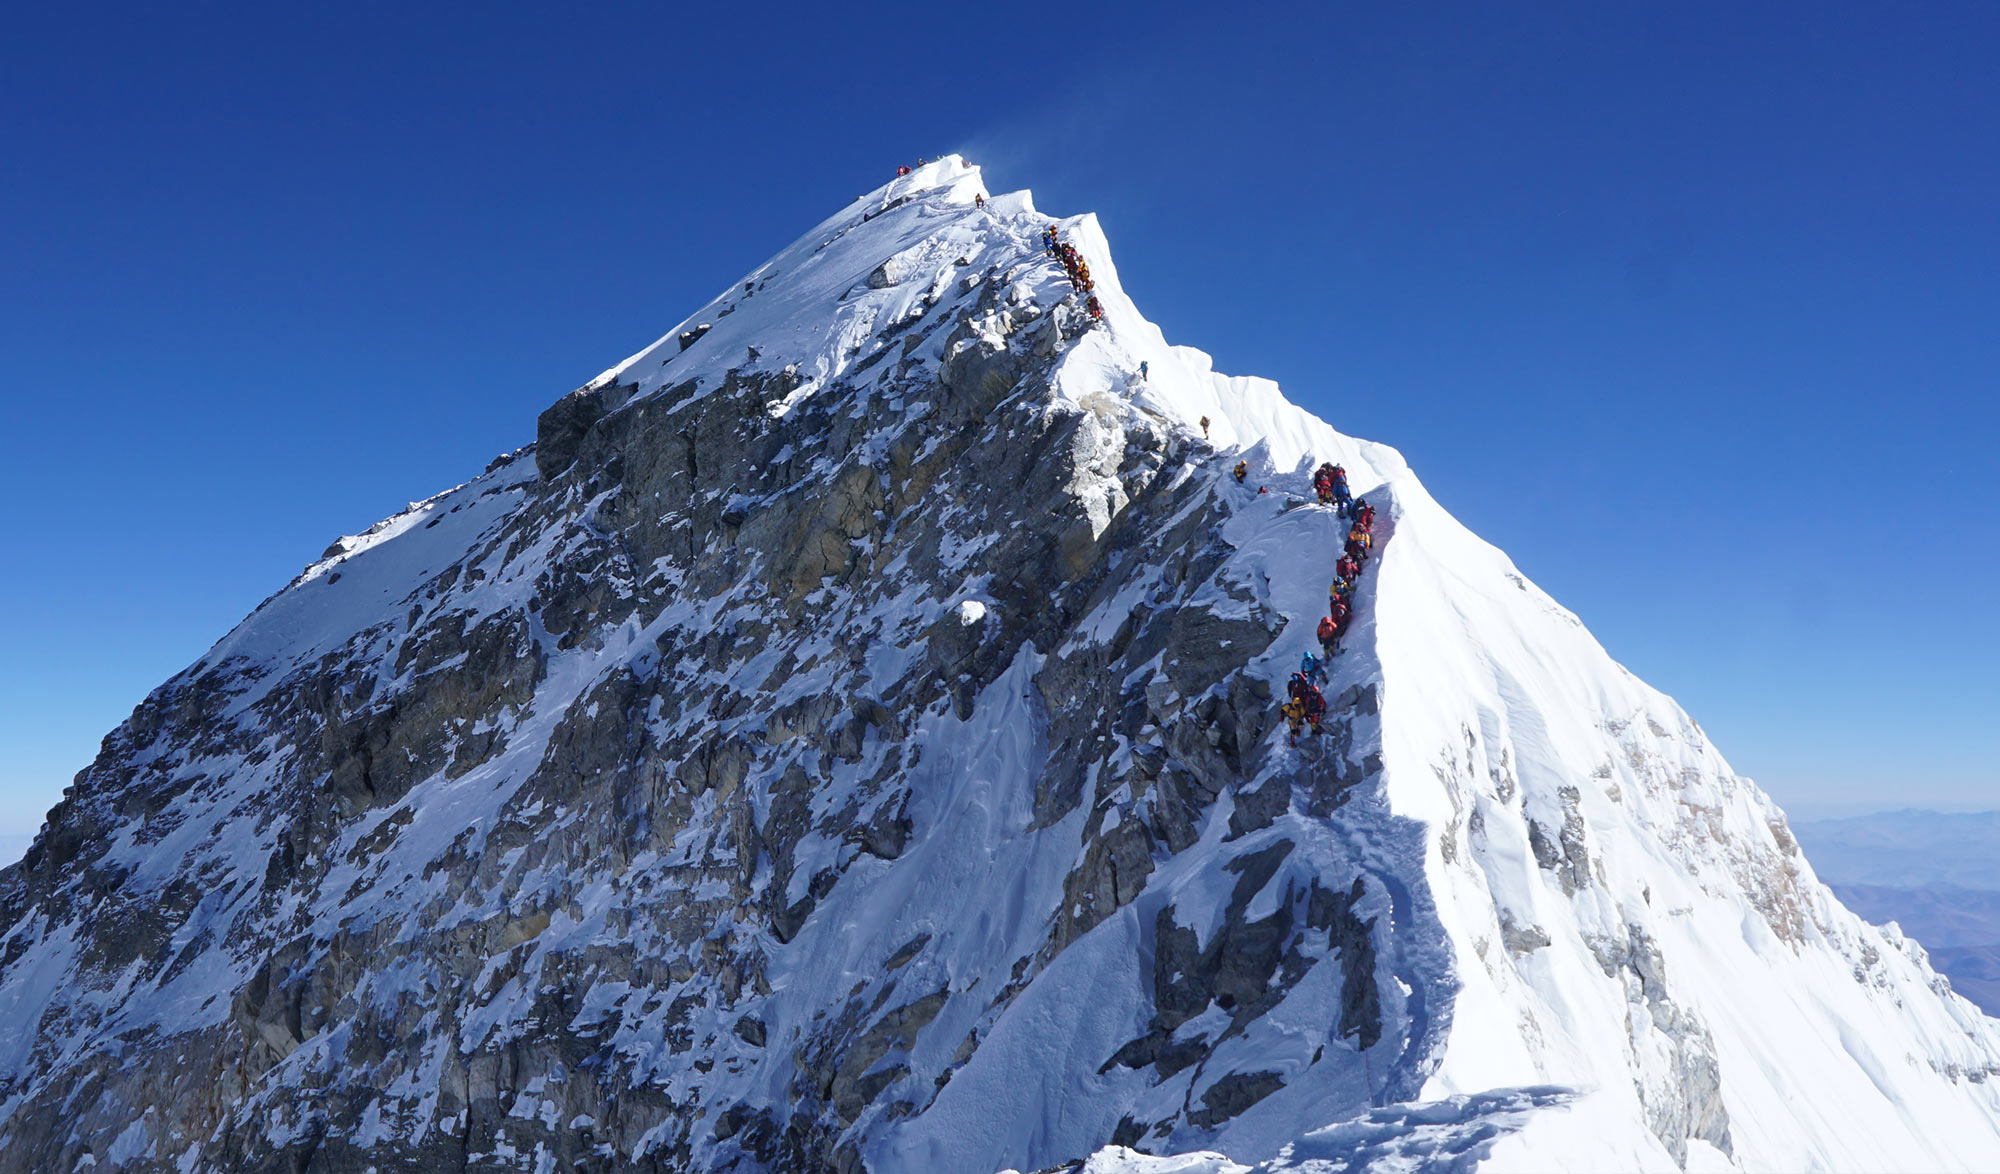 Queue d'alpinistes au sommet de l'Everest